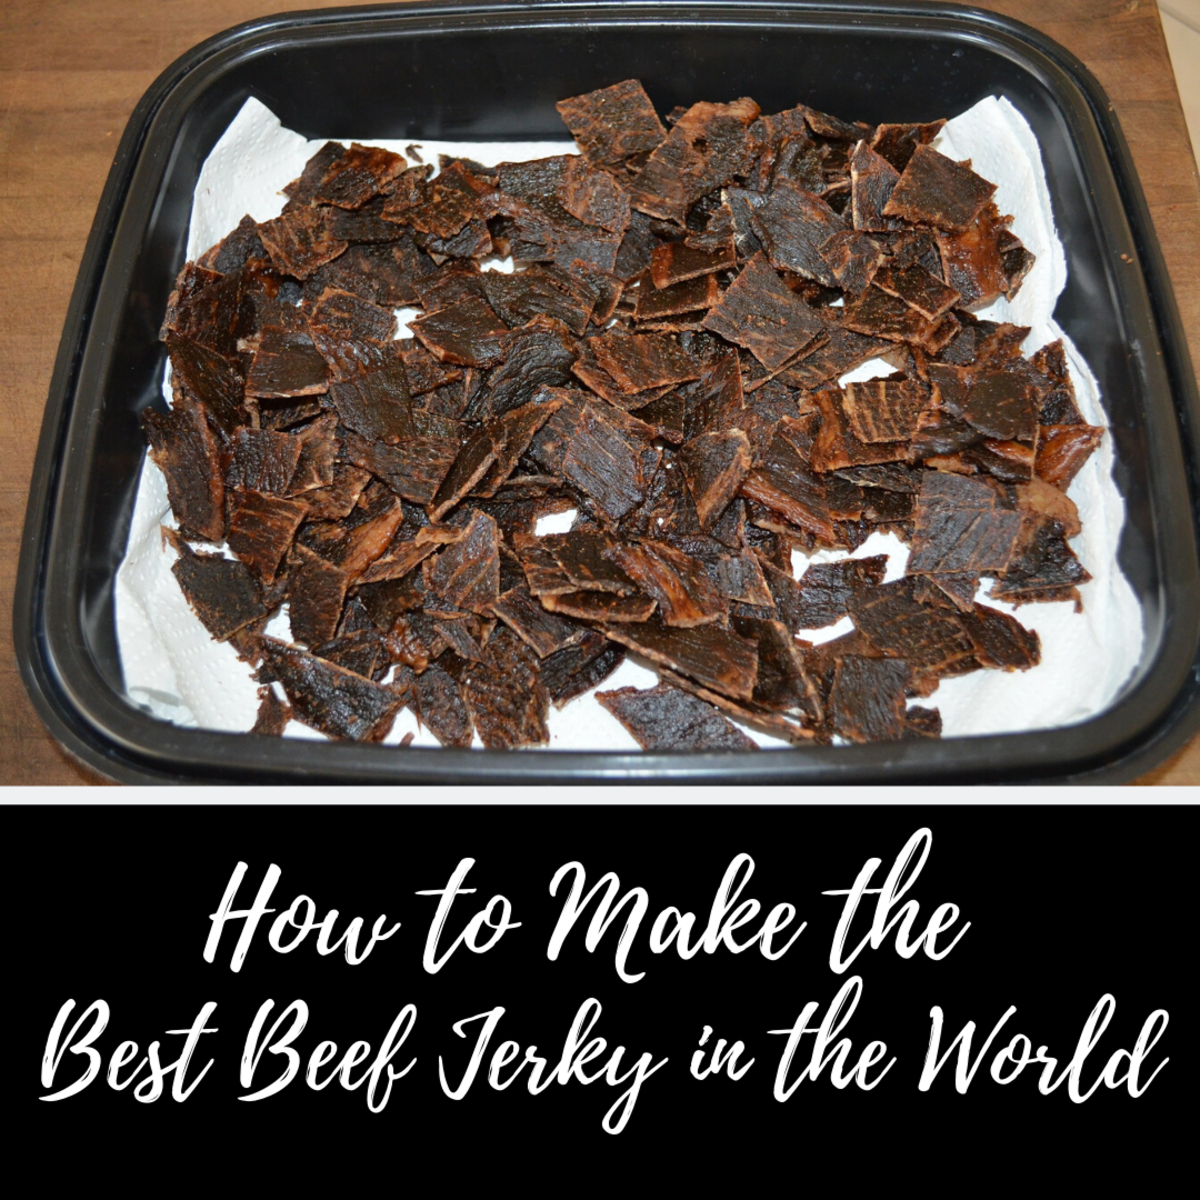 This beef jerky recipe is absolutely delicious.